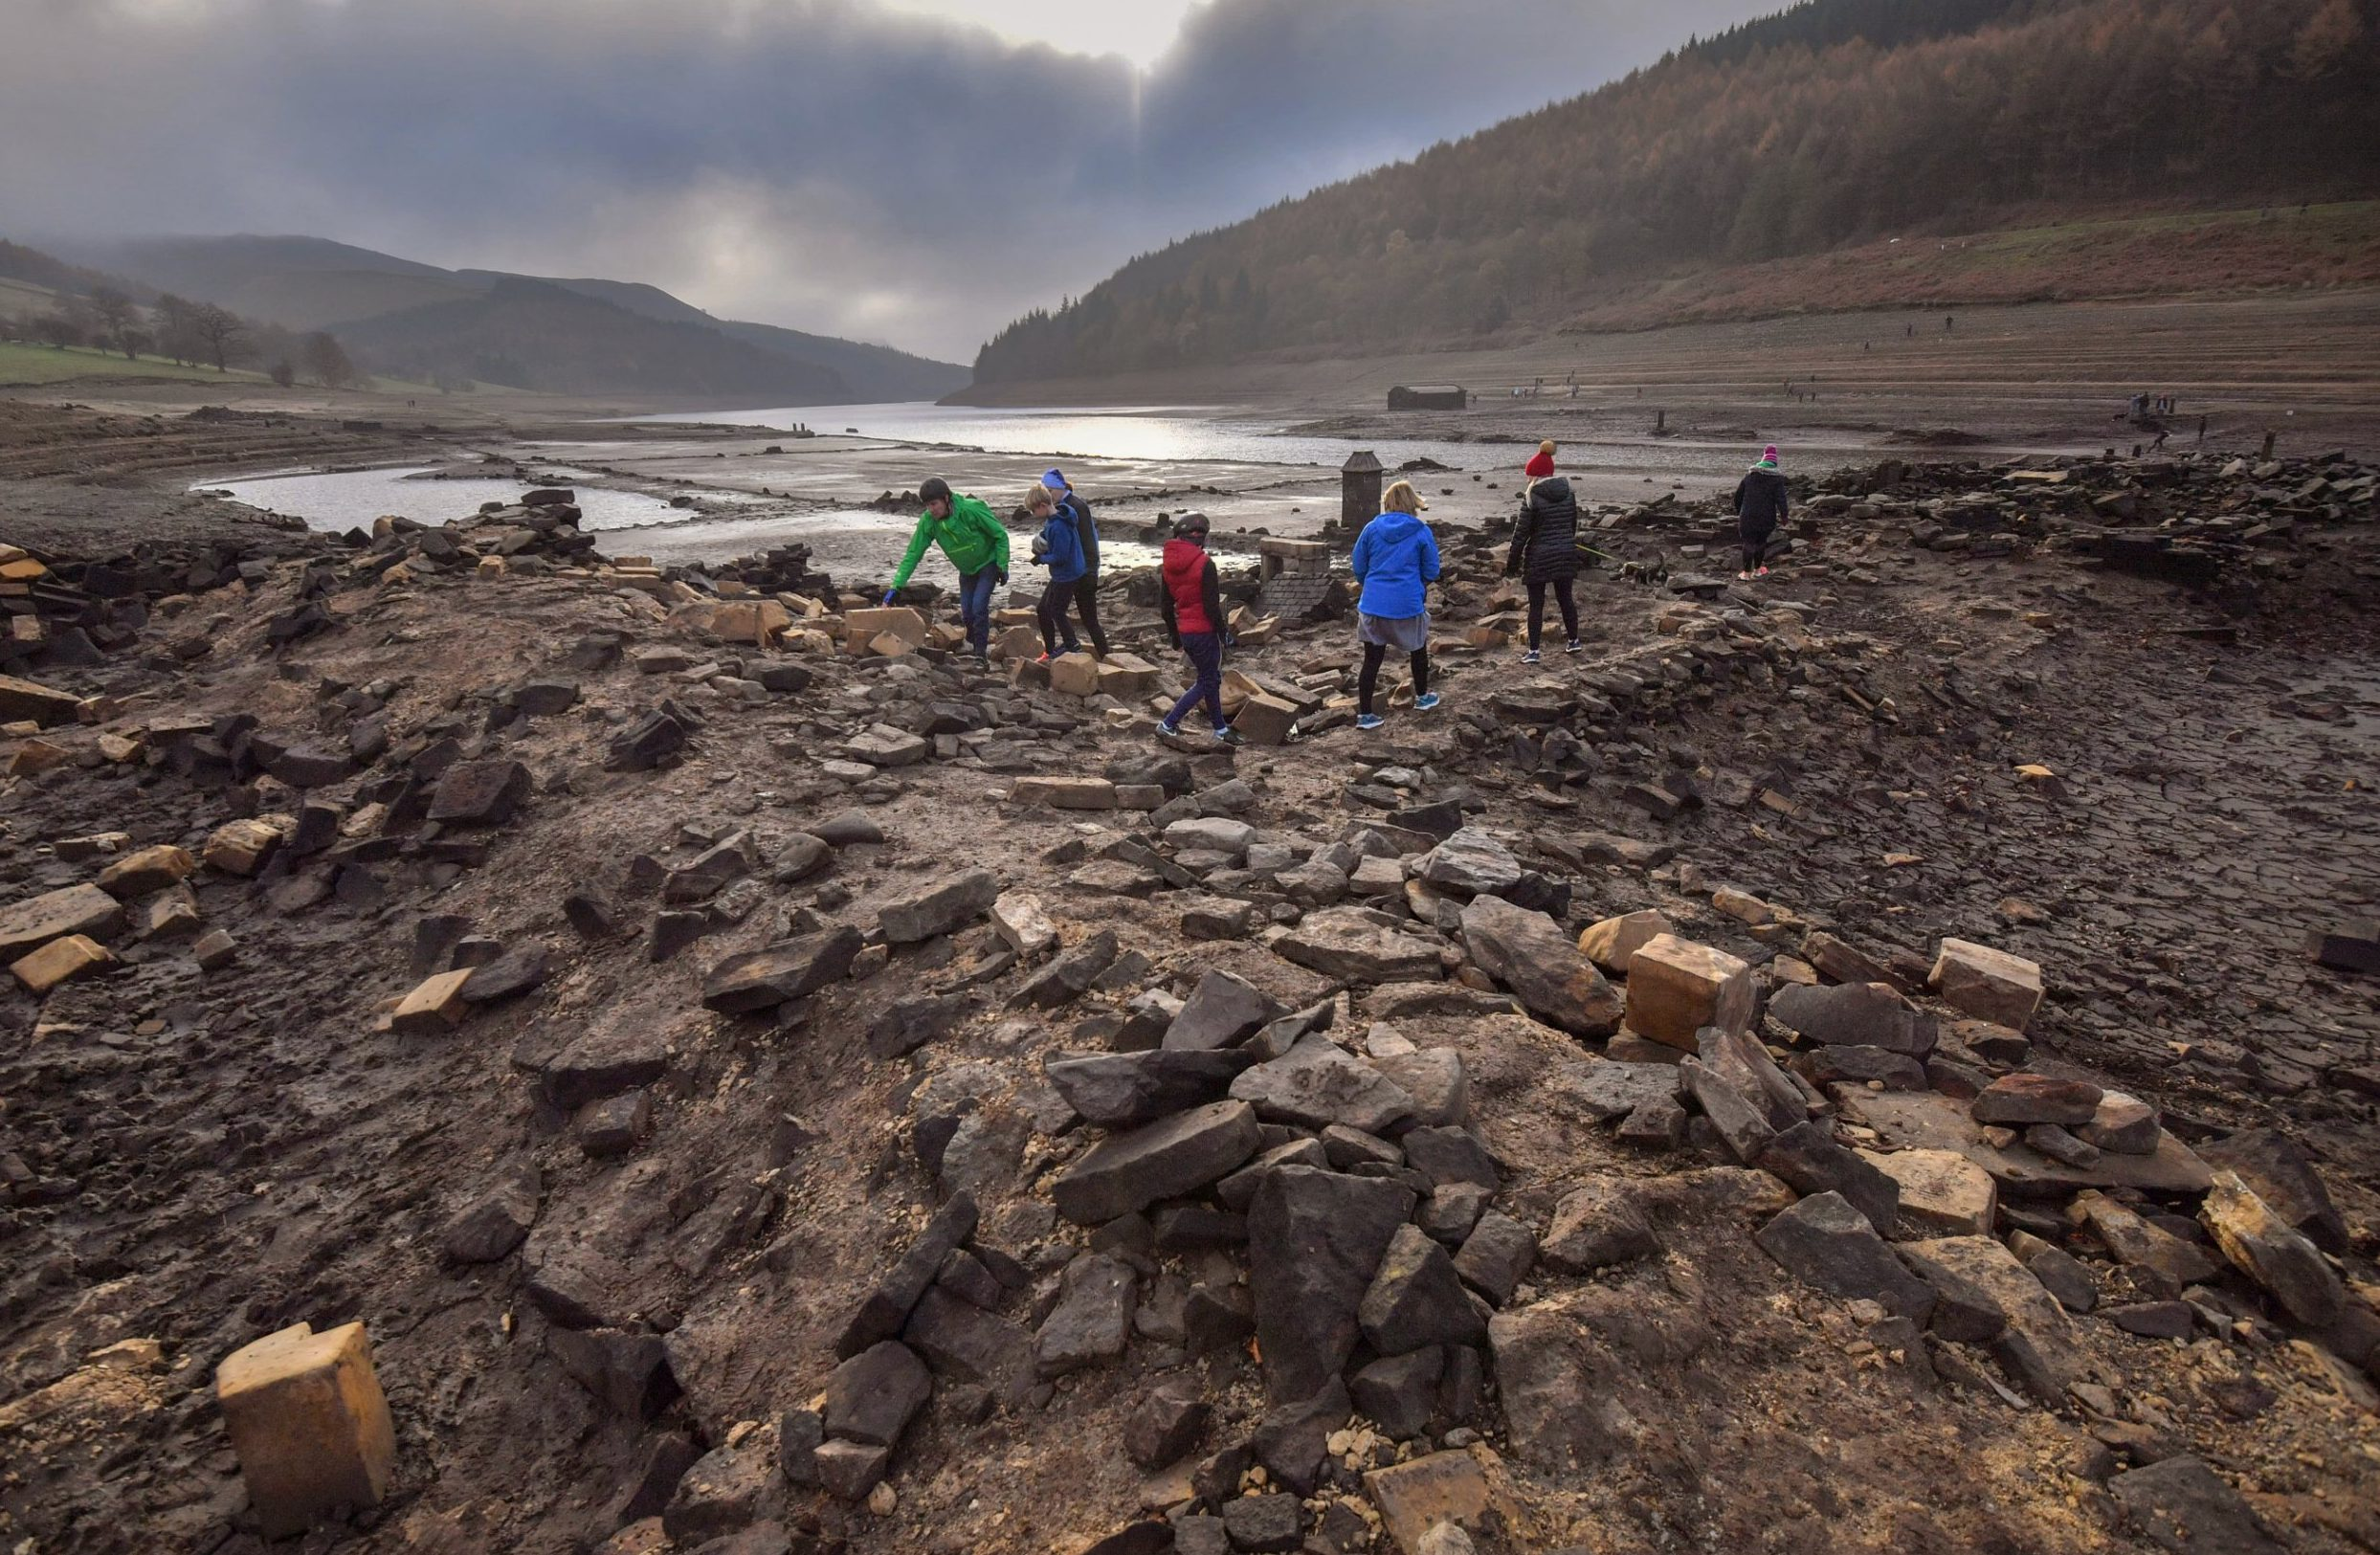 SHEFFIELD, ENGLAND - NOVEMBER 18: The ruins of Derwent Hall are exposed by low water levels in Ladybower reservoir on November 18, 2018 in Sheffield, England. The villages of Derwent and Ashopton in Derbyshire were deliberately flooded in 1943 to create Ladybower and Derwent reservoir, famously used by the Dambusters for practice missions during the Second World War. (Photo by Anthony Devlin/Getty Images)